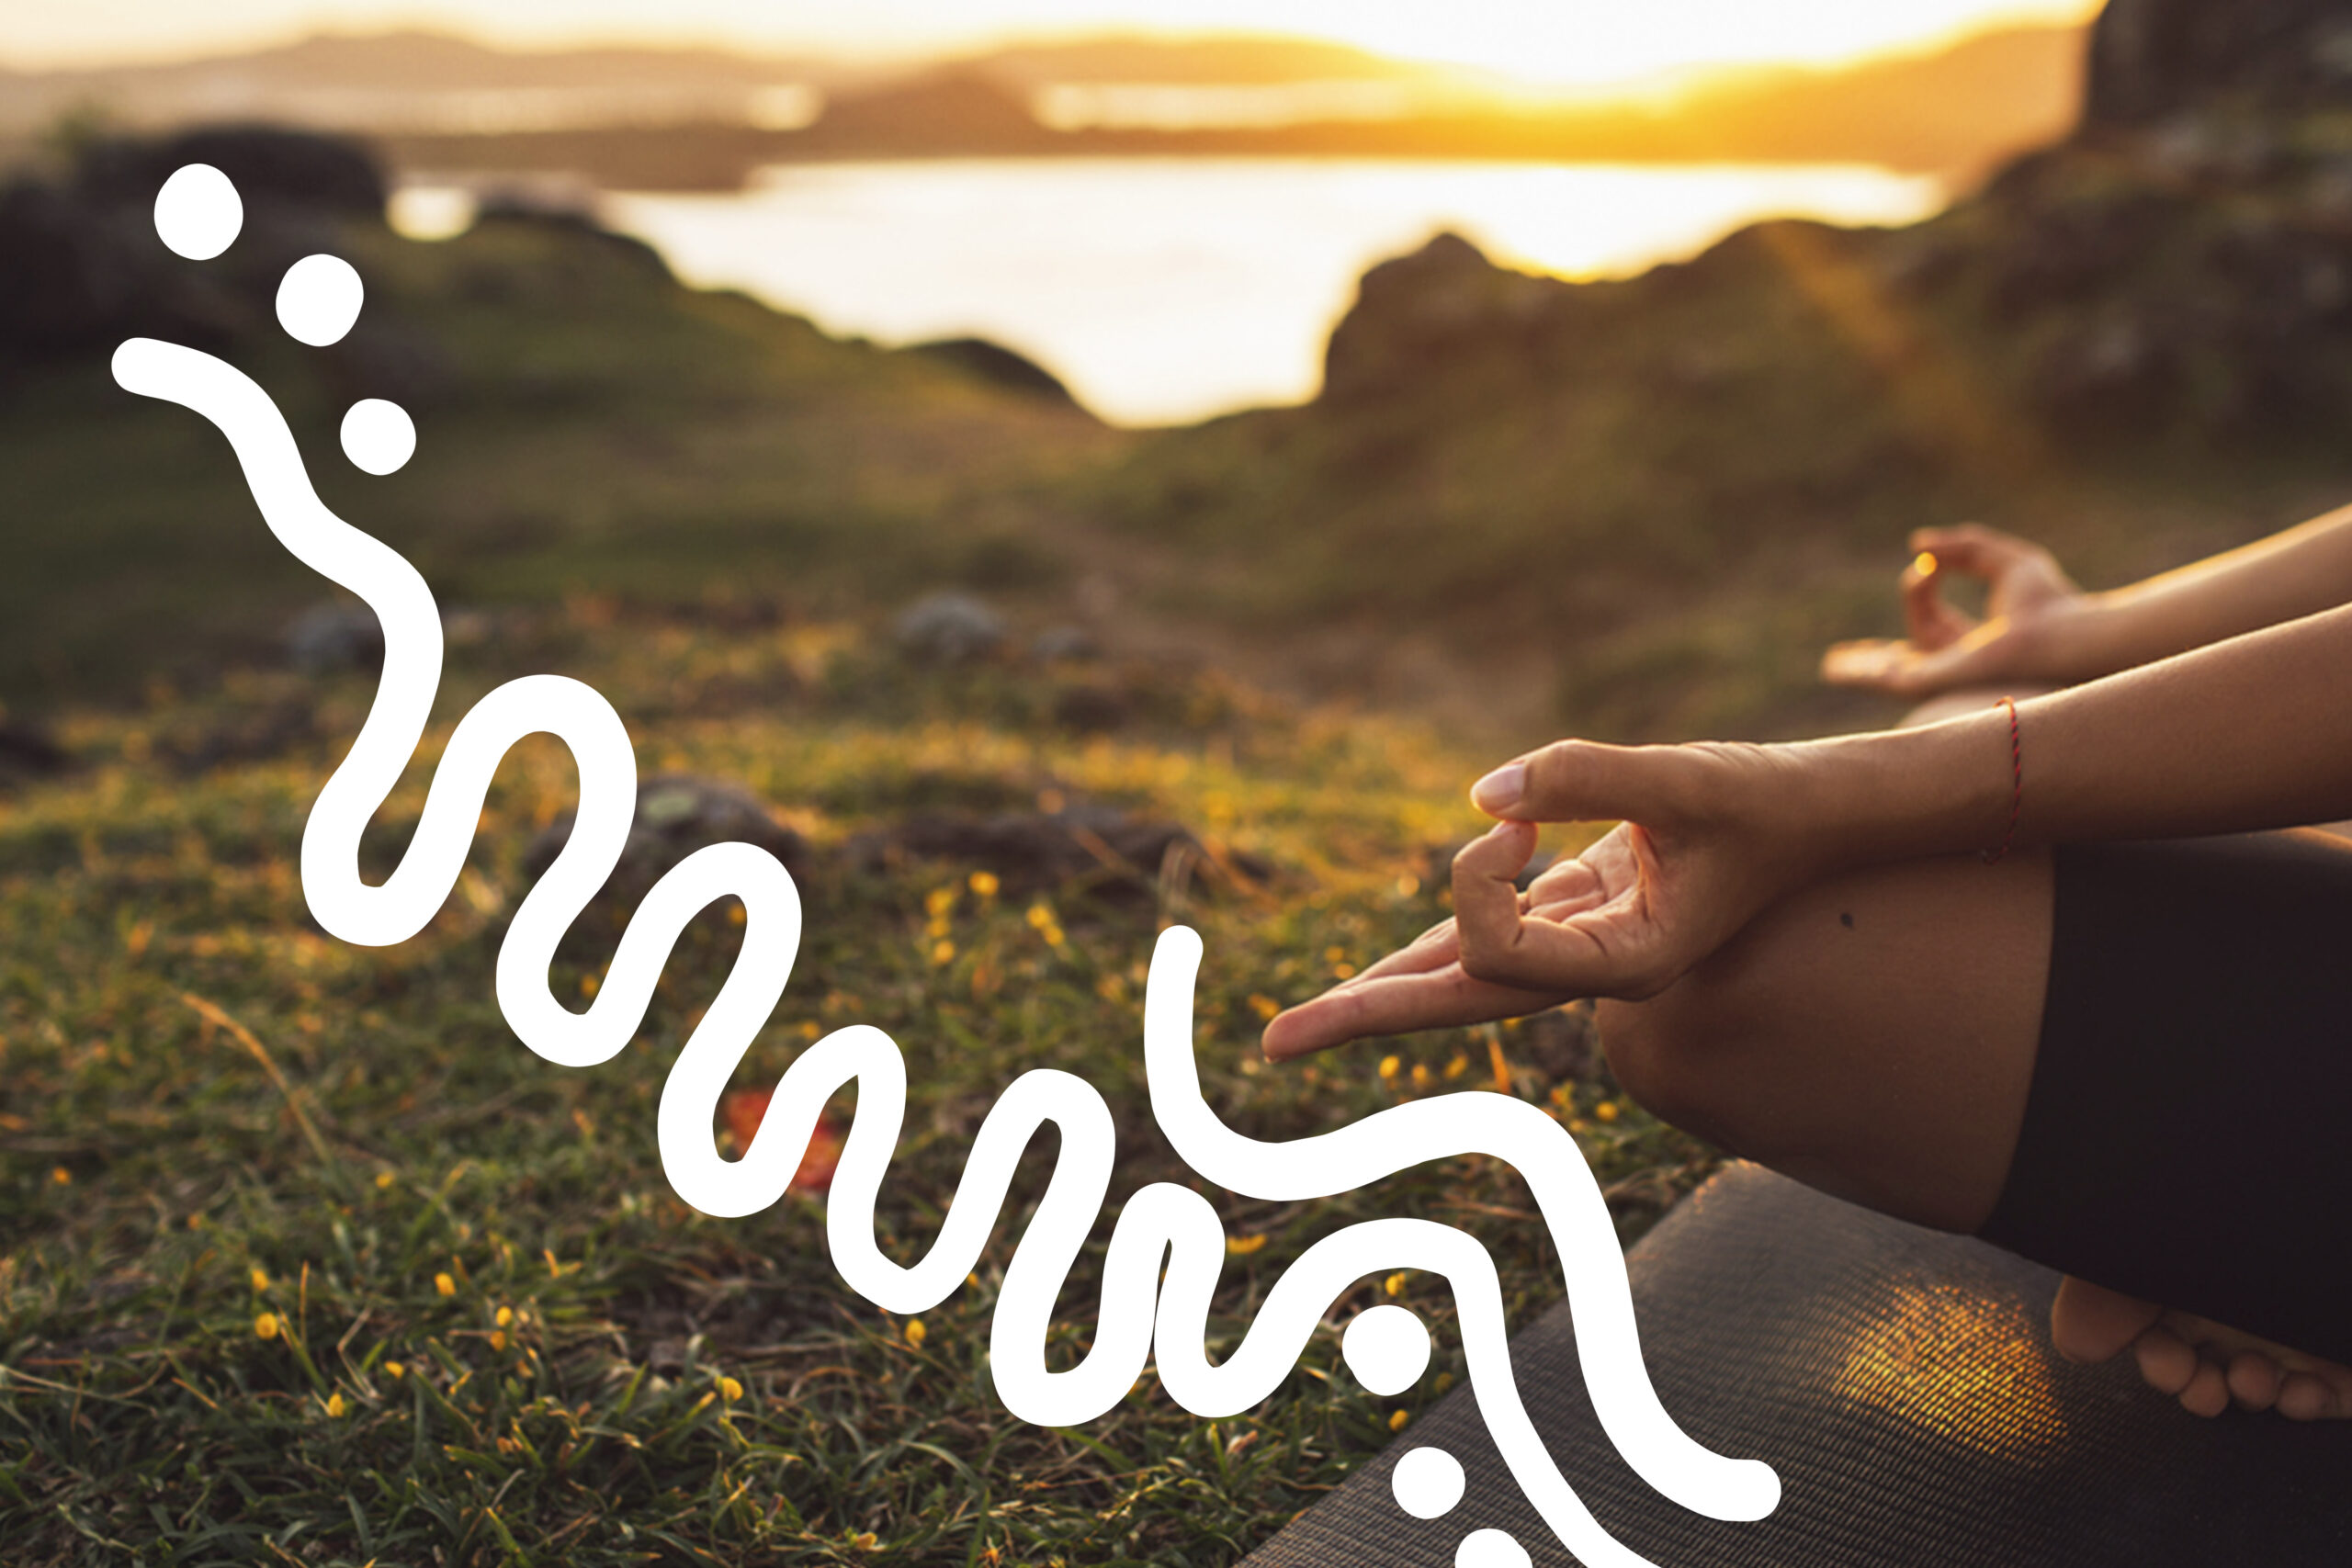 reduce worry and anxiety by meditating